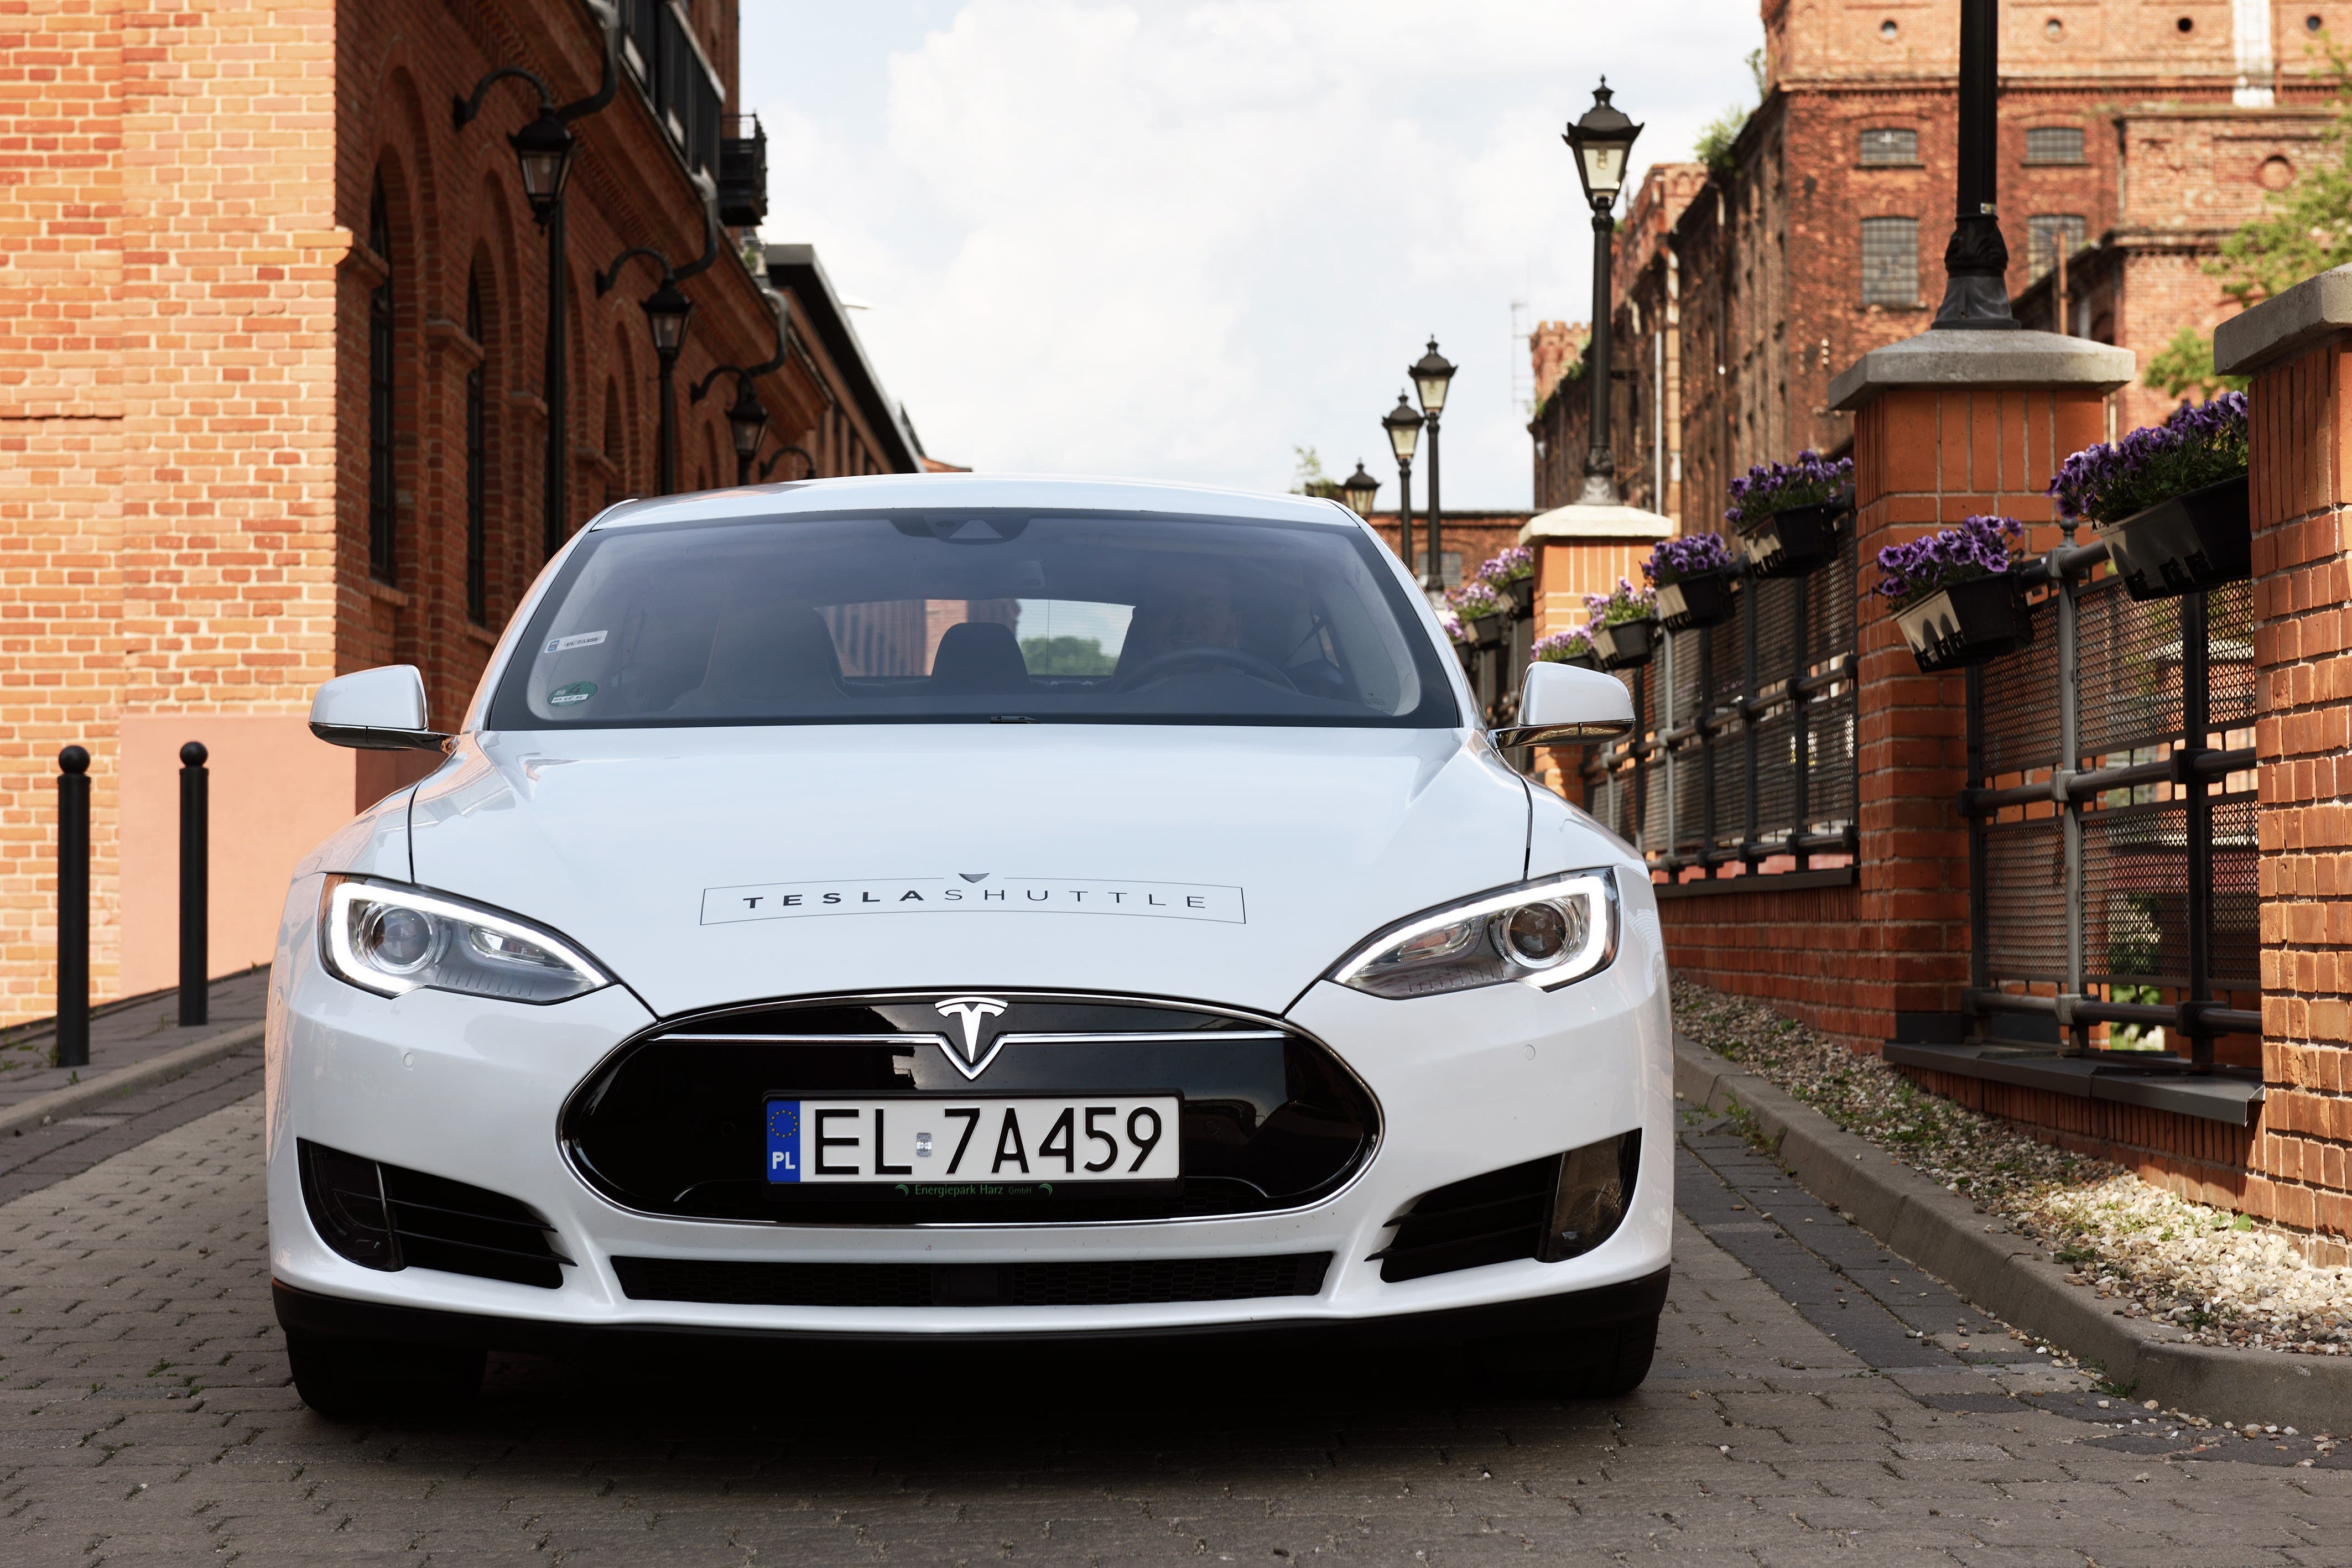 Tesla Model S Charging Cost After 17,000 km = $70